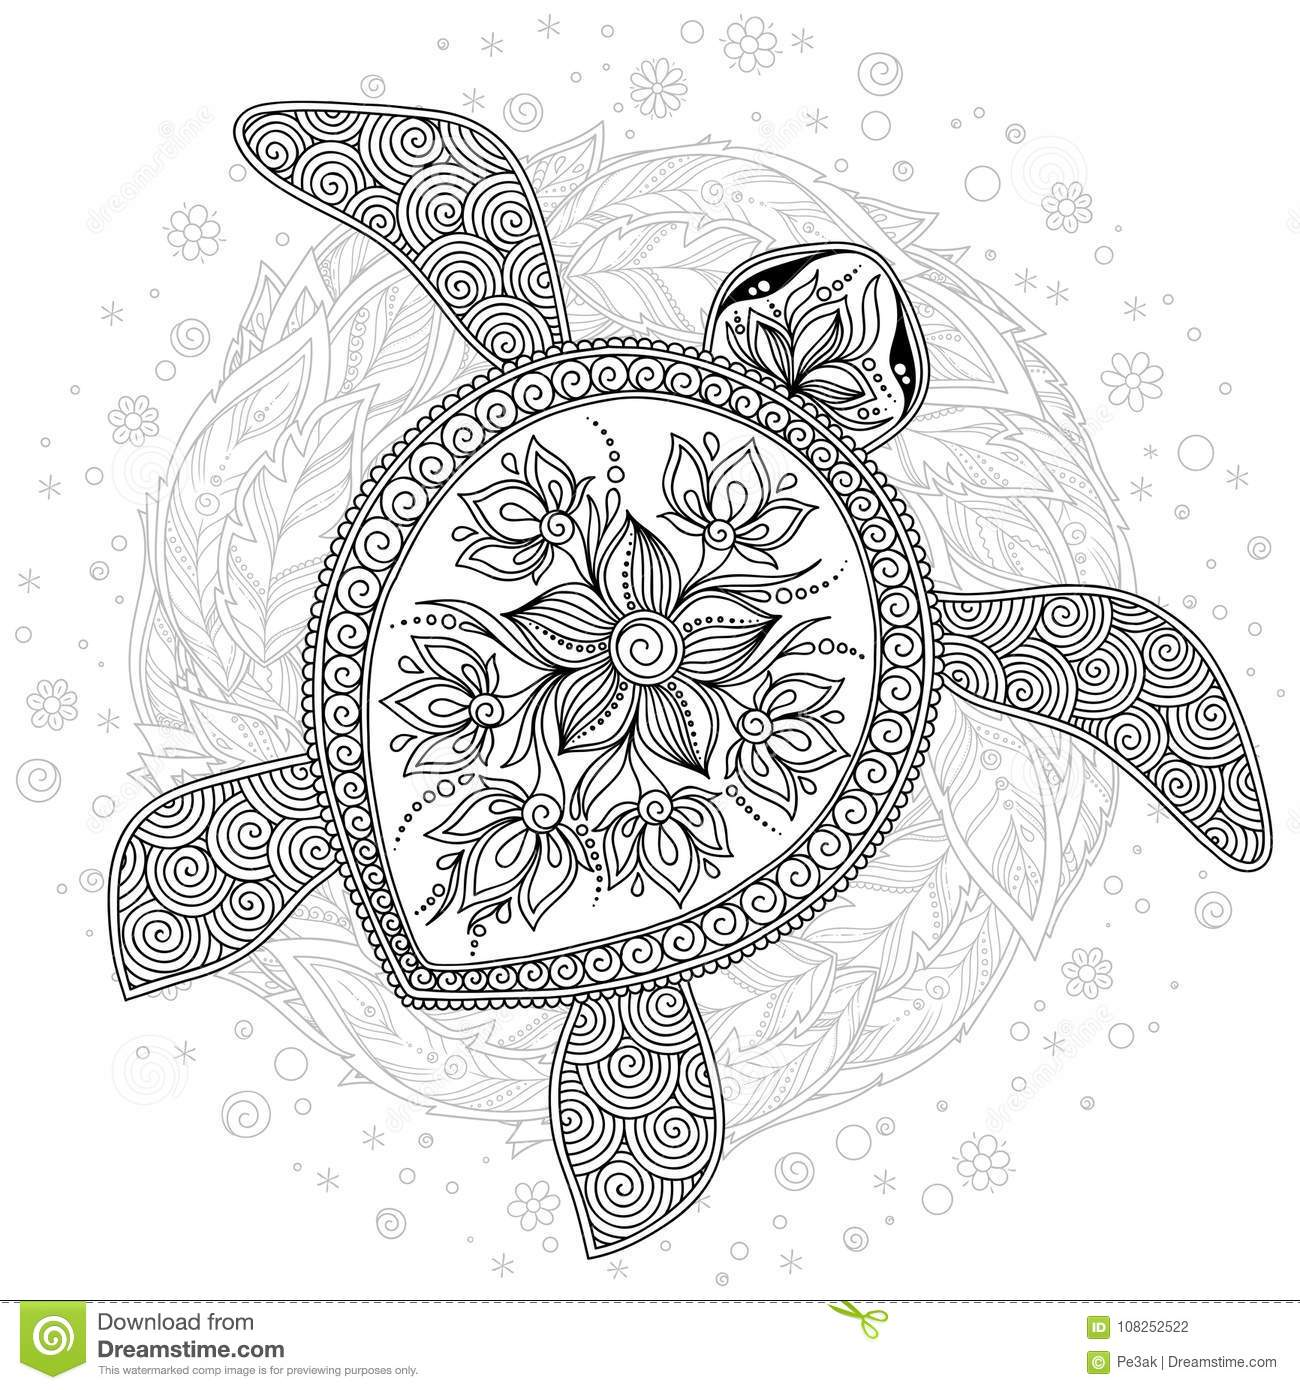 - Vector Illustration Of Sea Turtle For Coloring Book Pages Stock